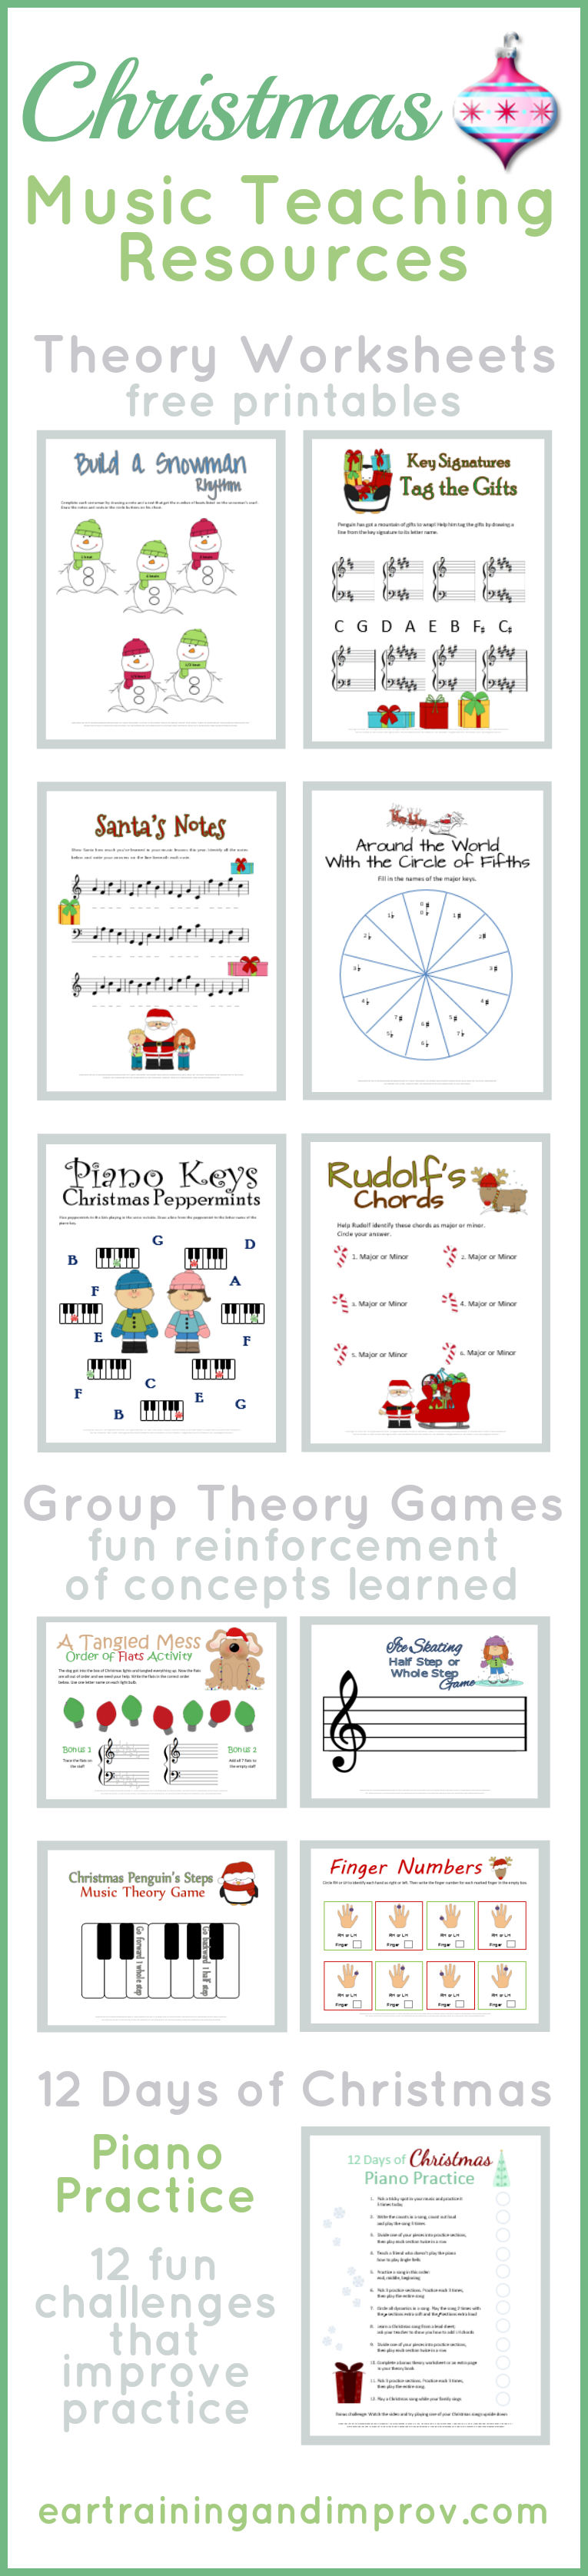 Christmas Music Theory Worksheets - 20+ Free Printables | Free Printable Music Theory Worksheets